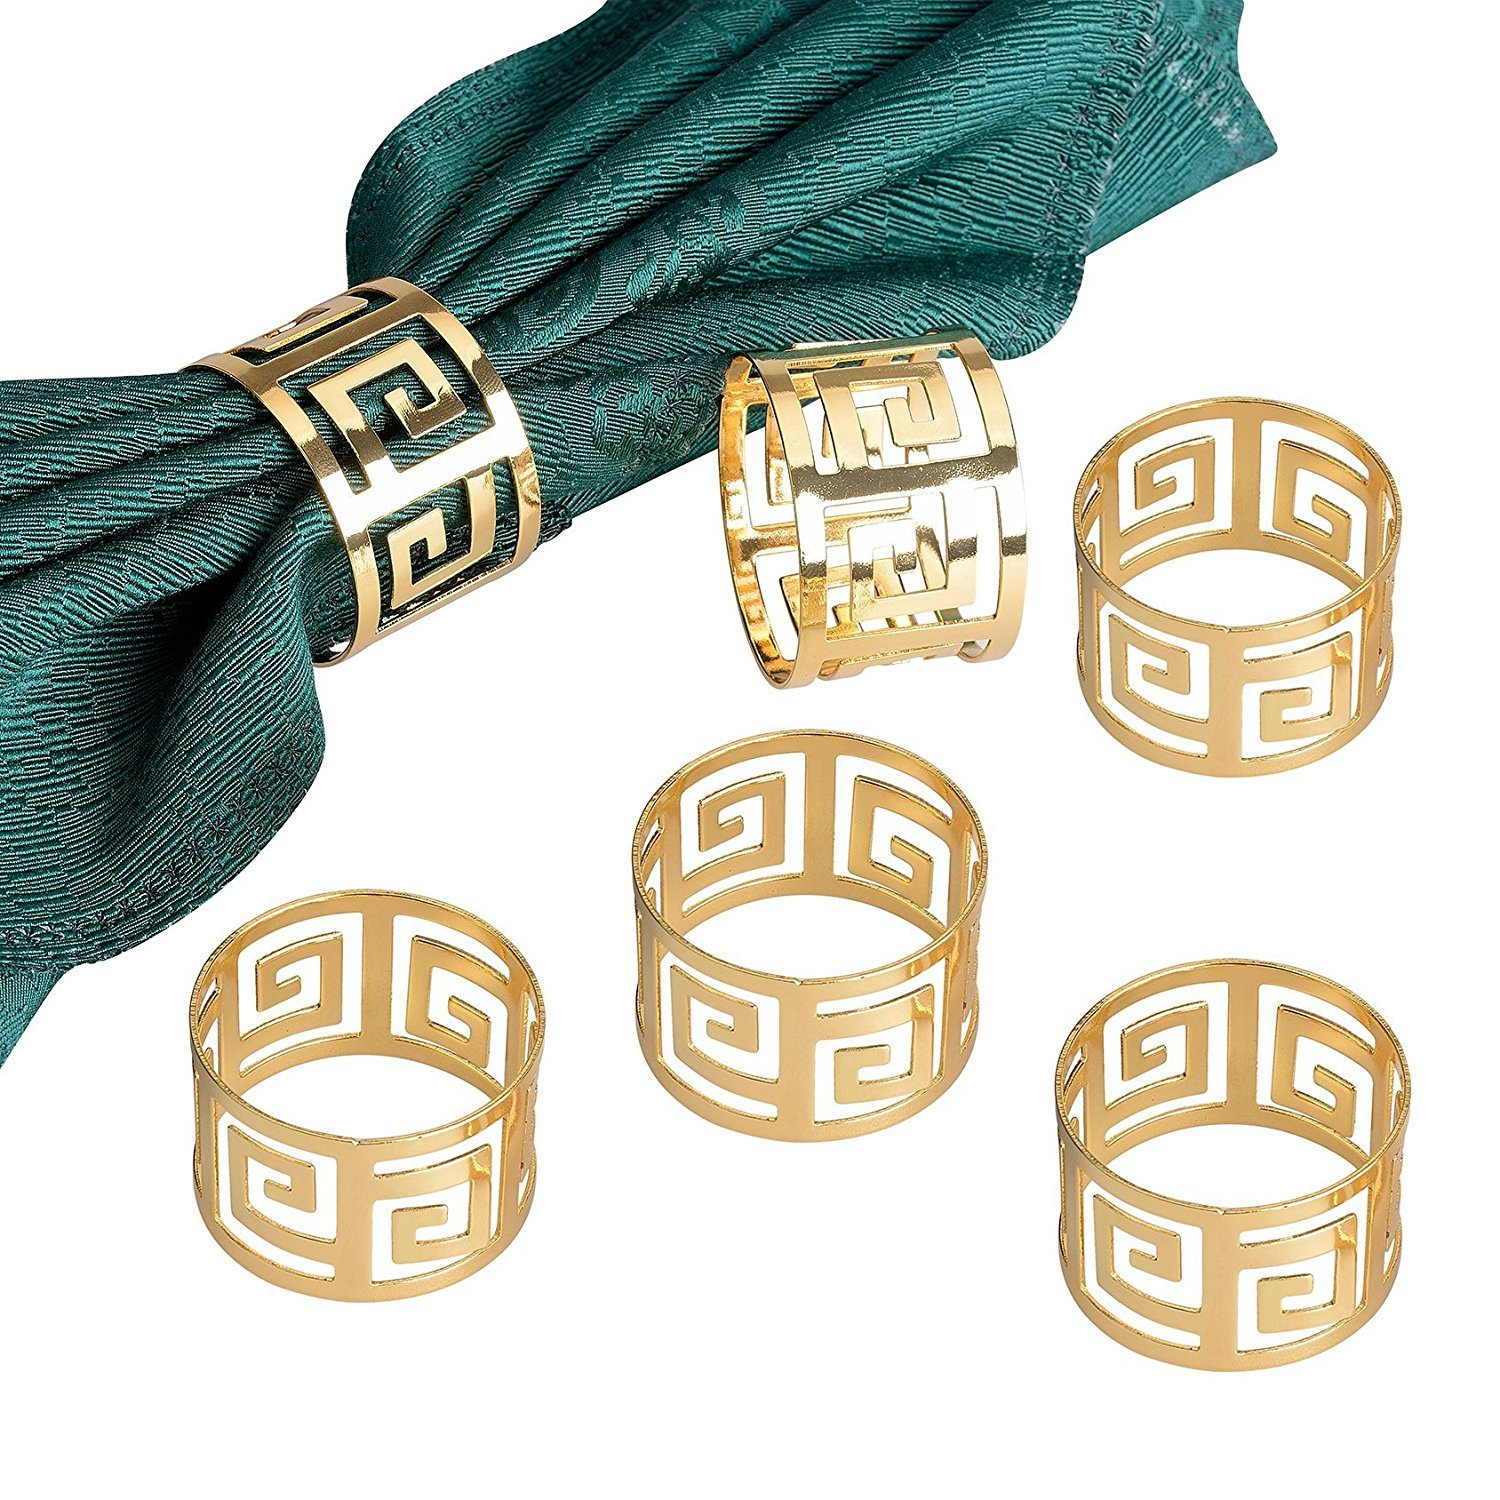 Napkin Rings Pack,Derker Set of 6 Hollow Out Round Napkin Rings for for Wedding, Party, Holiday, Dinner (Gold) COMINHKPR80121